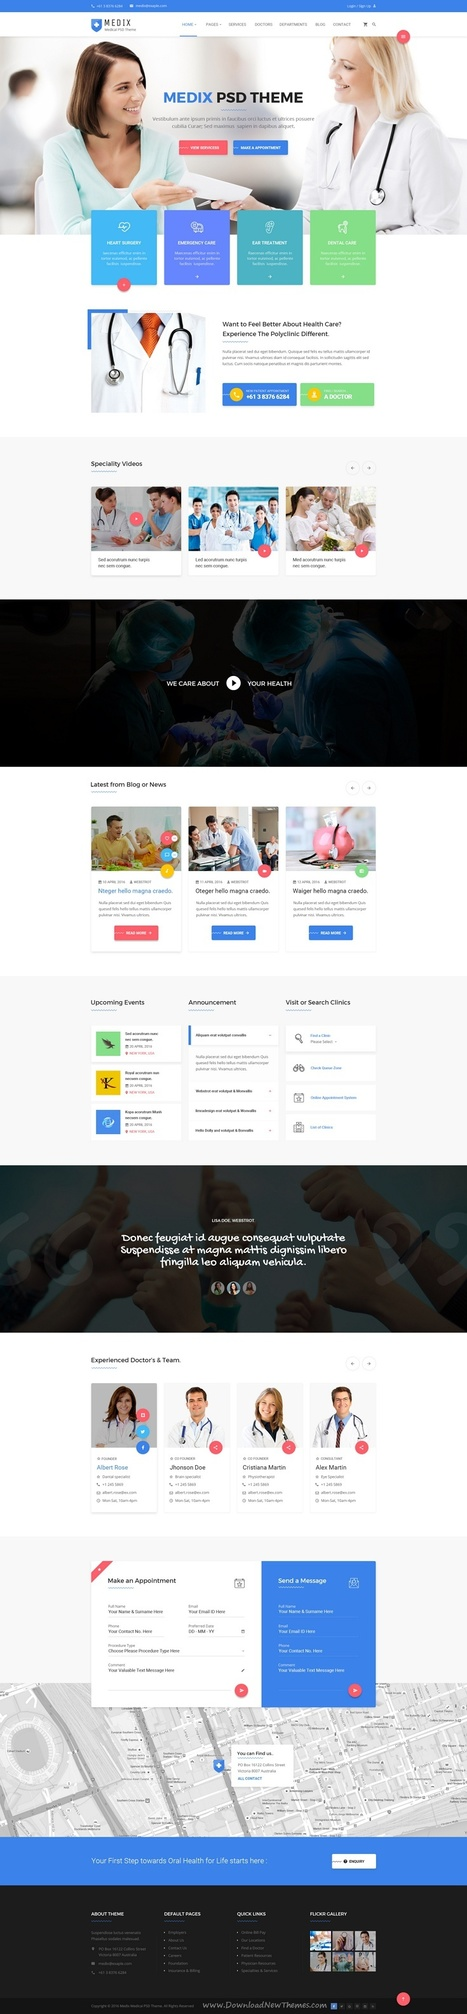 Medix Beautiful Medical, Doctor and Health Care PSD Template Download | Creative Themes and Template Download | Scoop.it